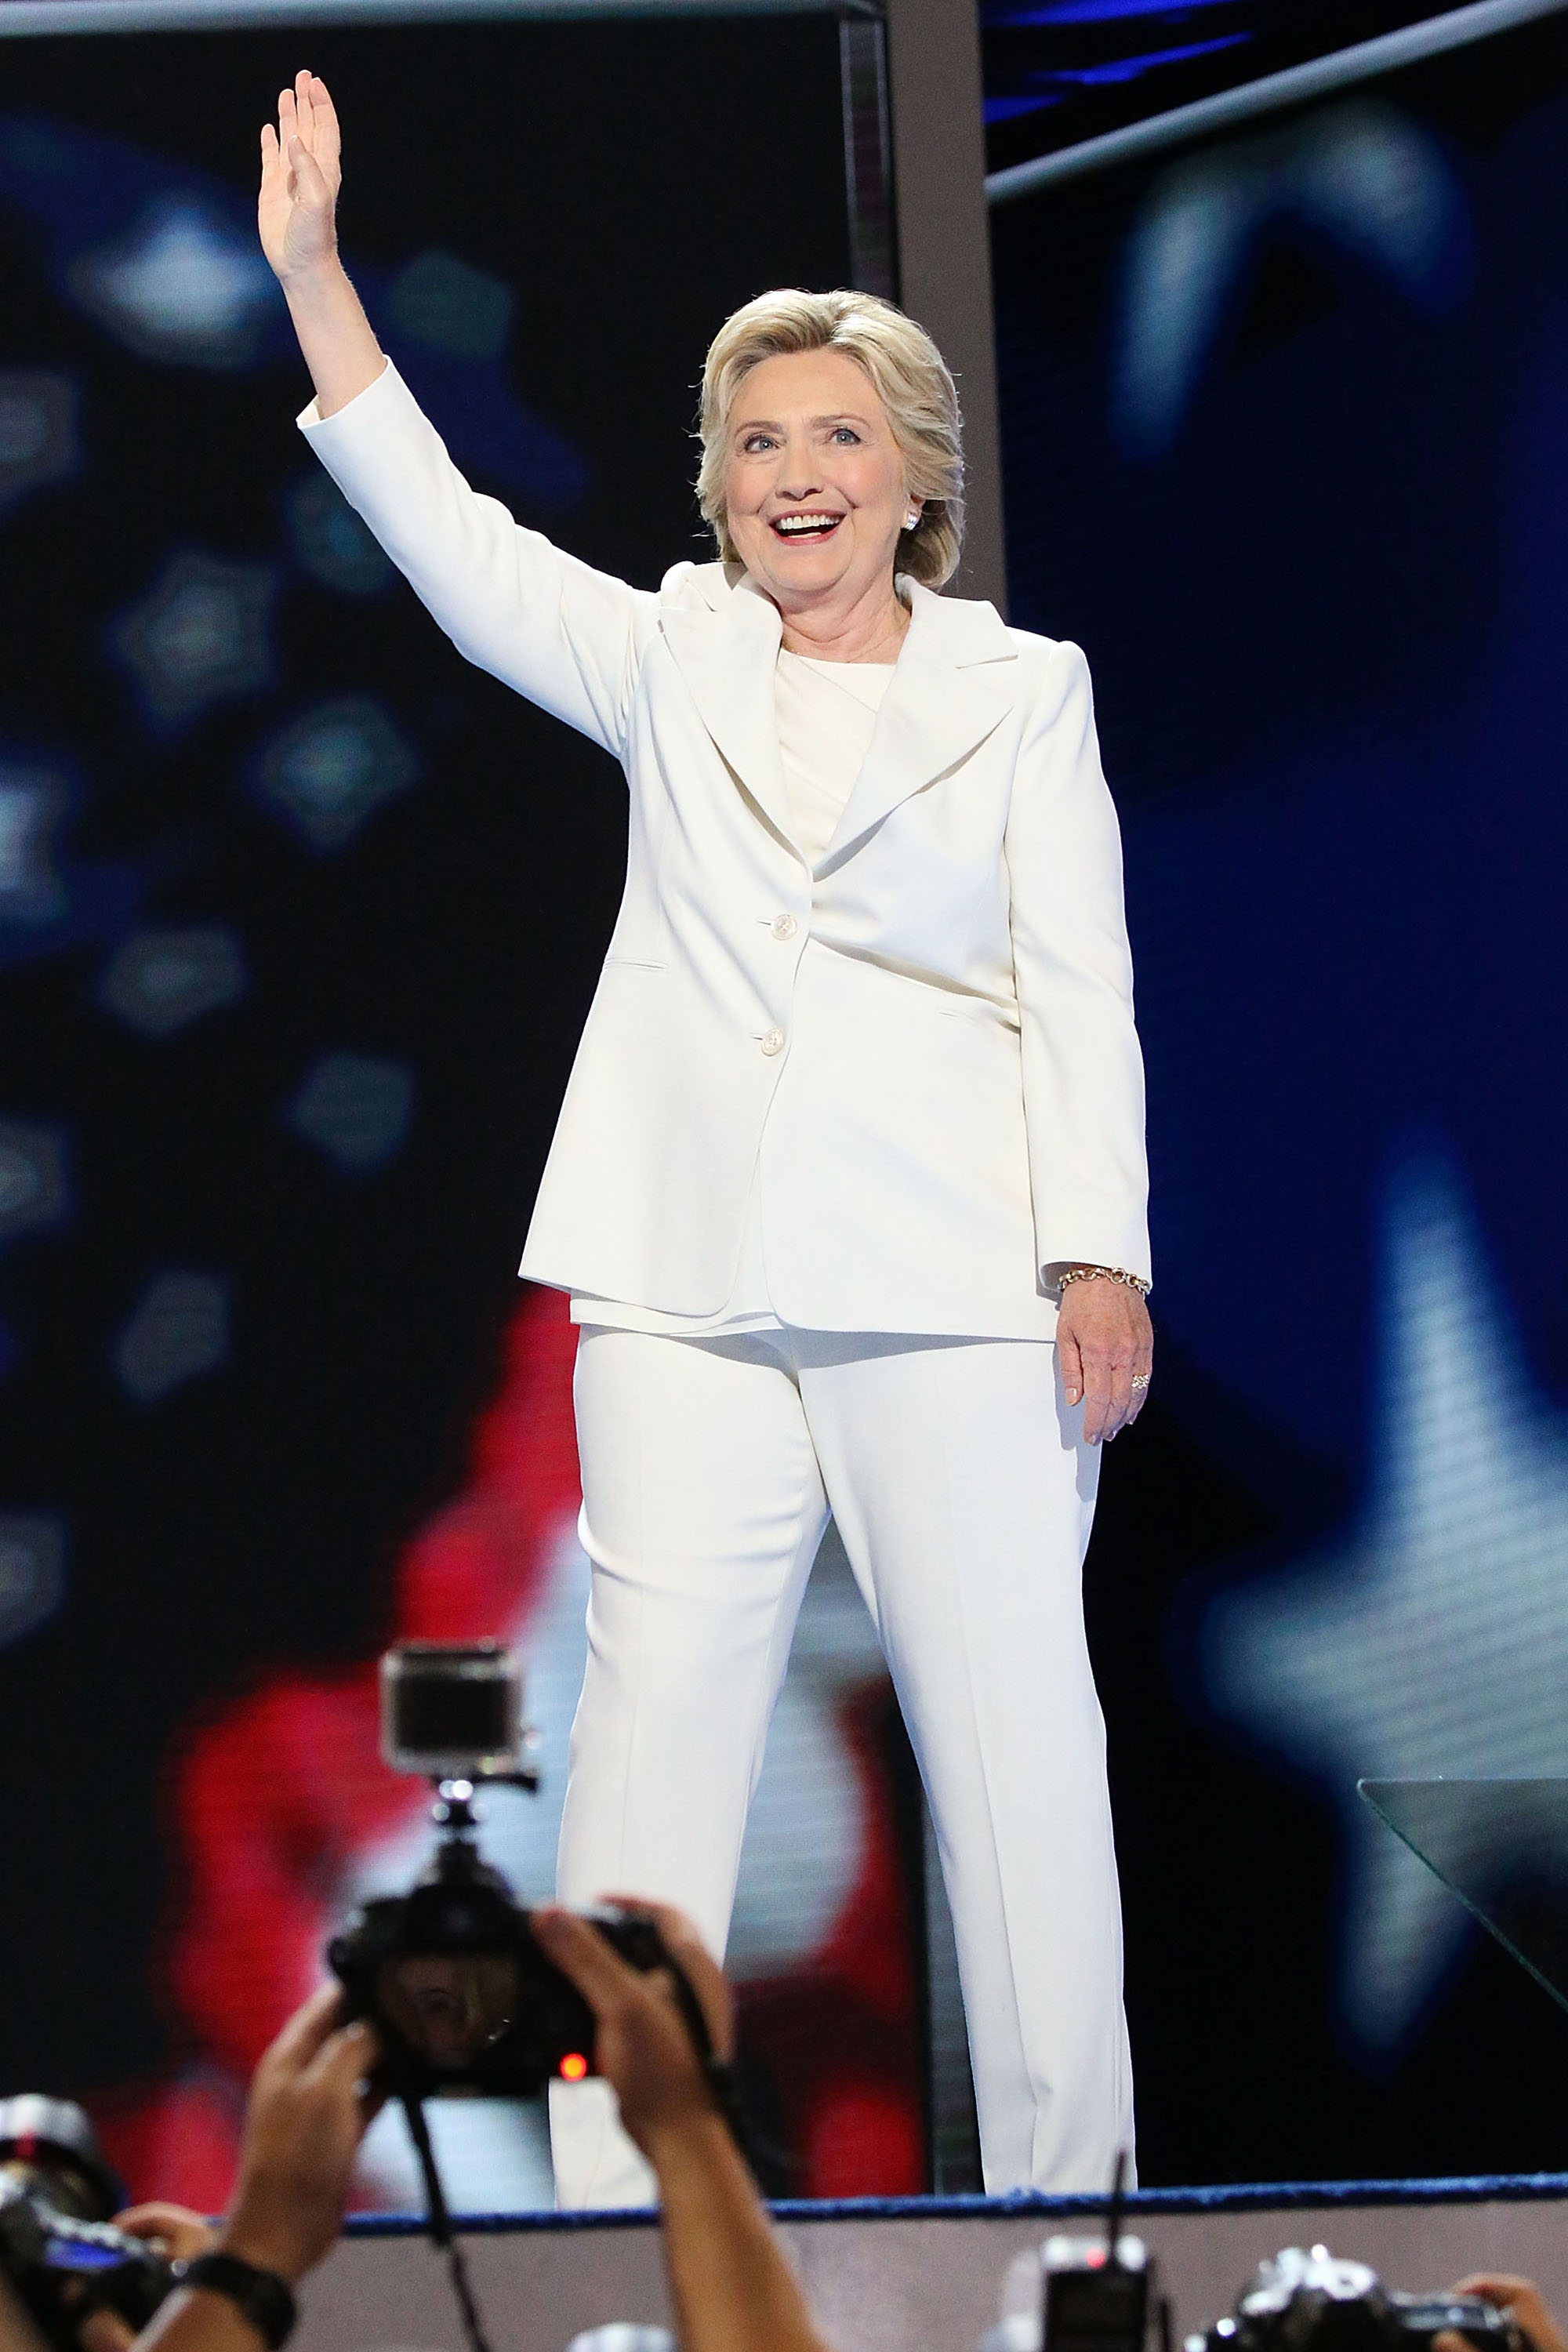 The GOP Has Learned Nothing from the Disastrous Nomination ... |Hillary Clintons Body